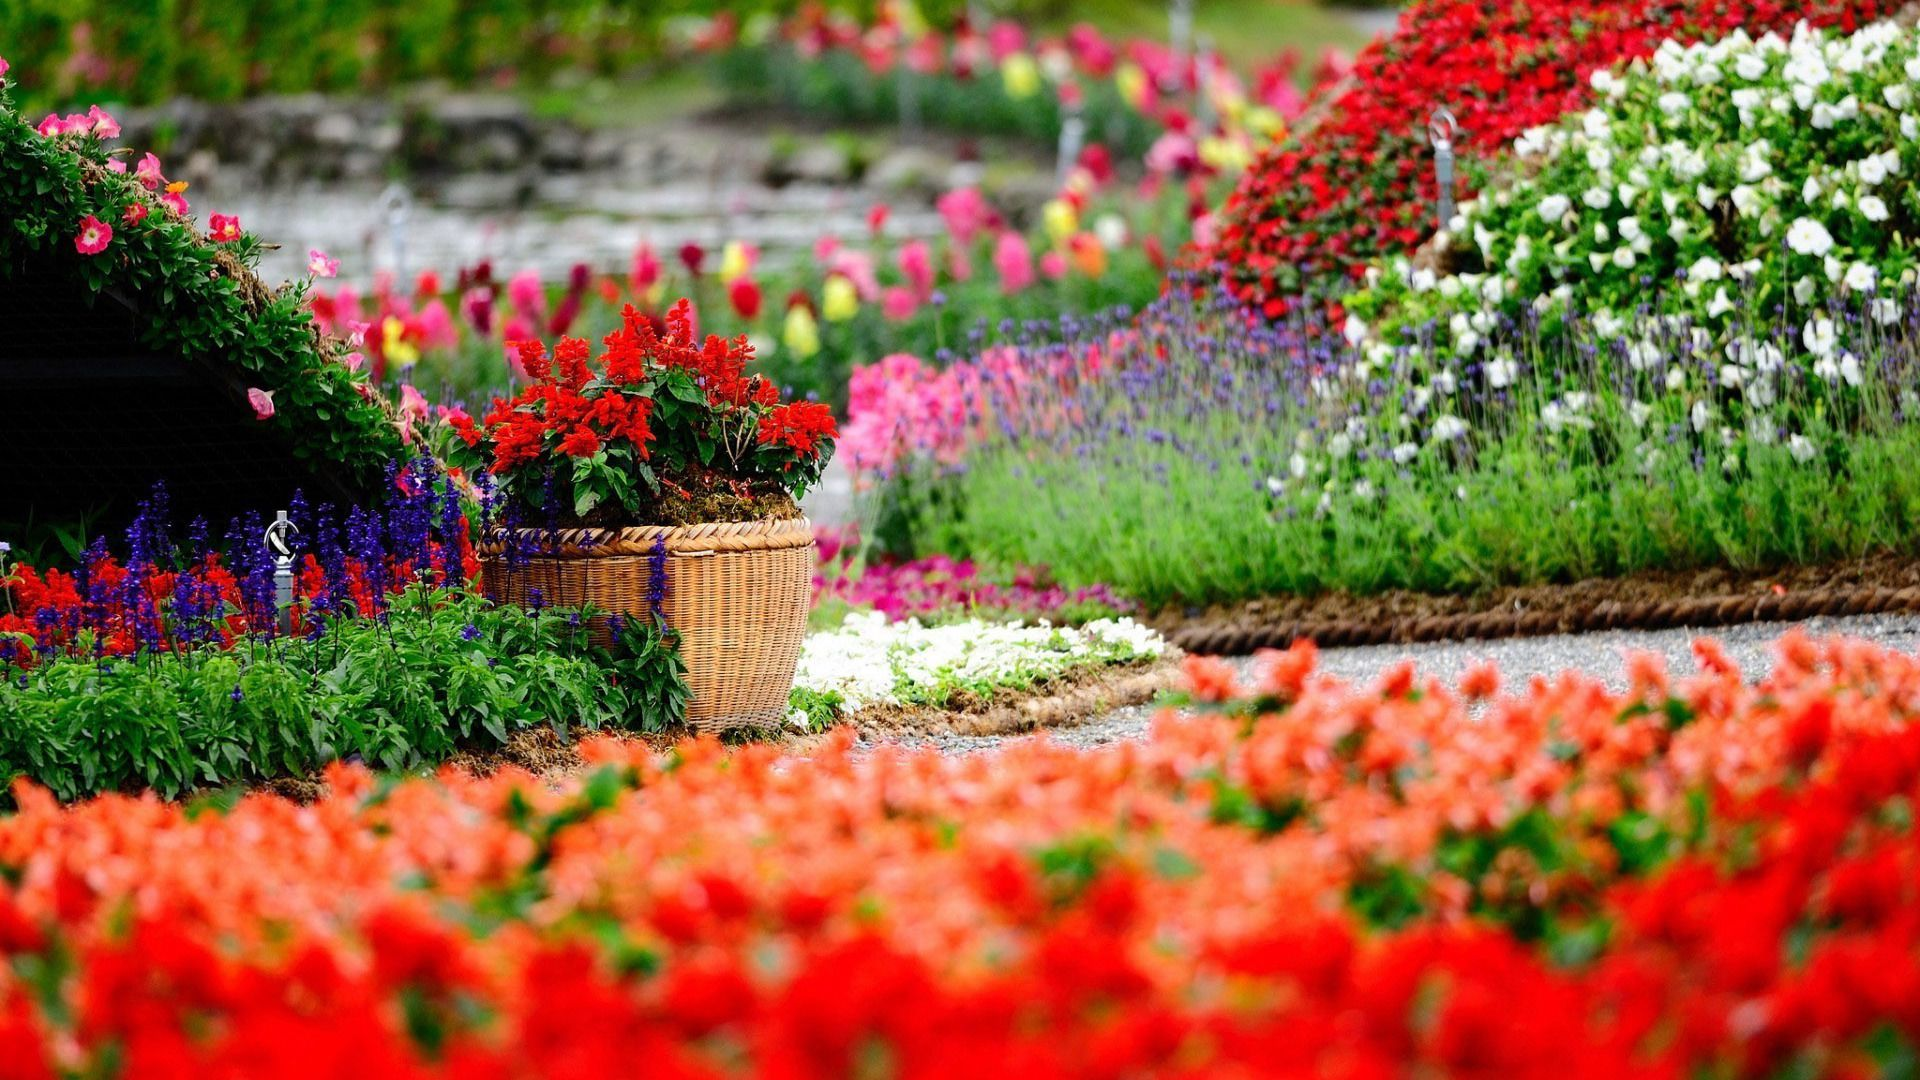 Backgrounds red flowers hd images new with wallpaper roses full backgrounds red flowers hd images new with wallpaper roses full 19201080 flowers hd wallpaper voltagebd Image collections